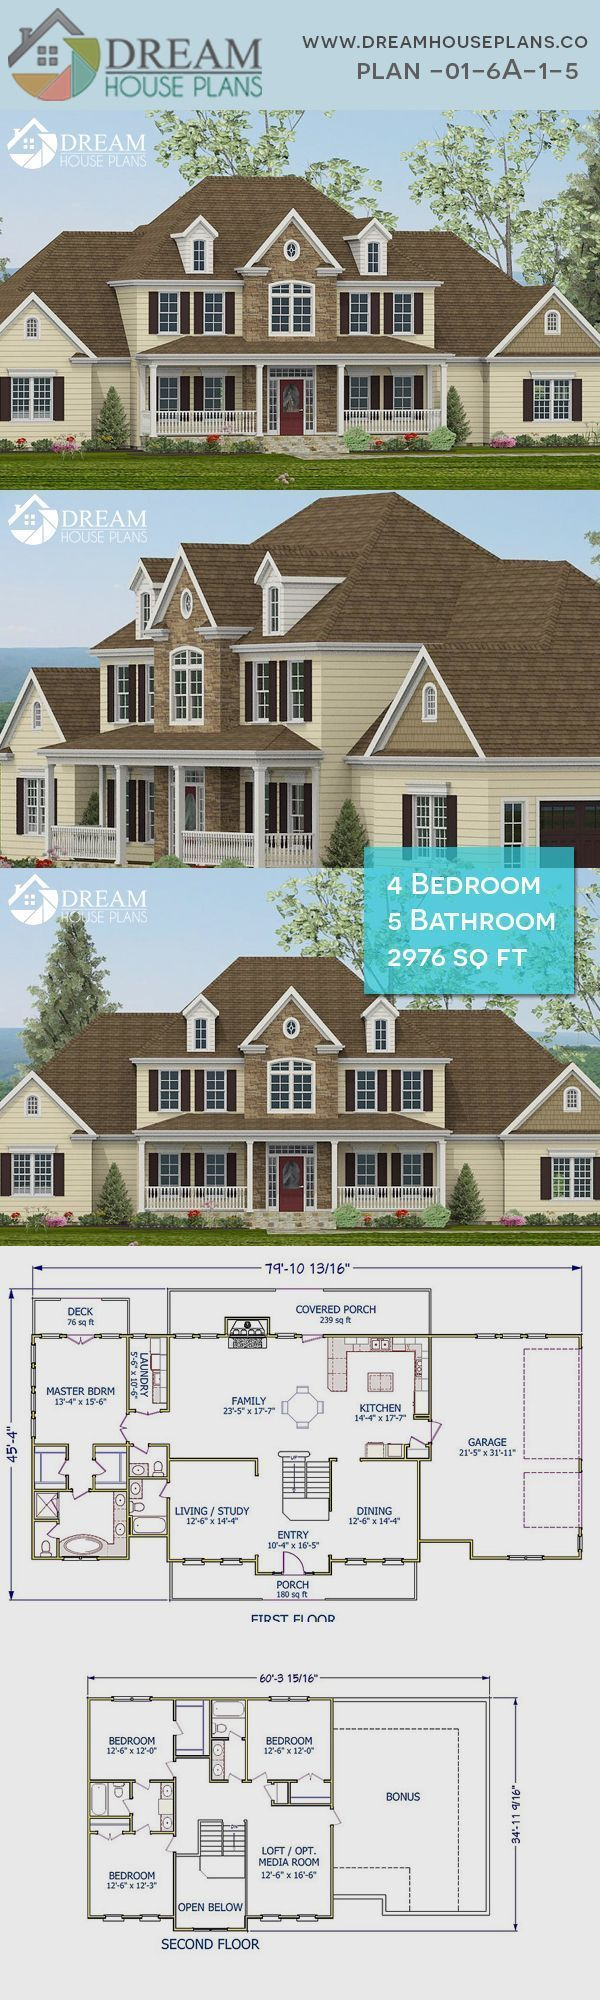 Dream House Plans Best Southern Living Family 4 Bedroom 2976 Sq Ft House Pla Dream House Plan In 2020 Craftsman House Plans Dream House Plans Ranch House Plans